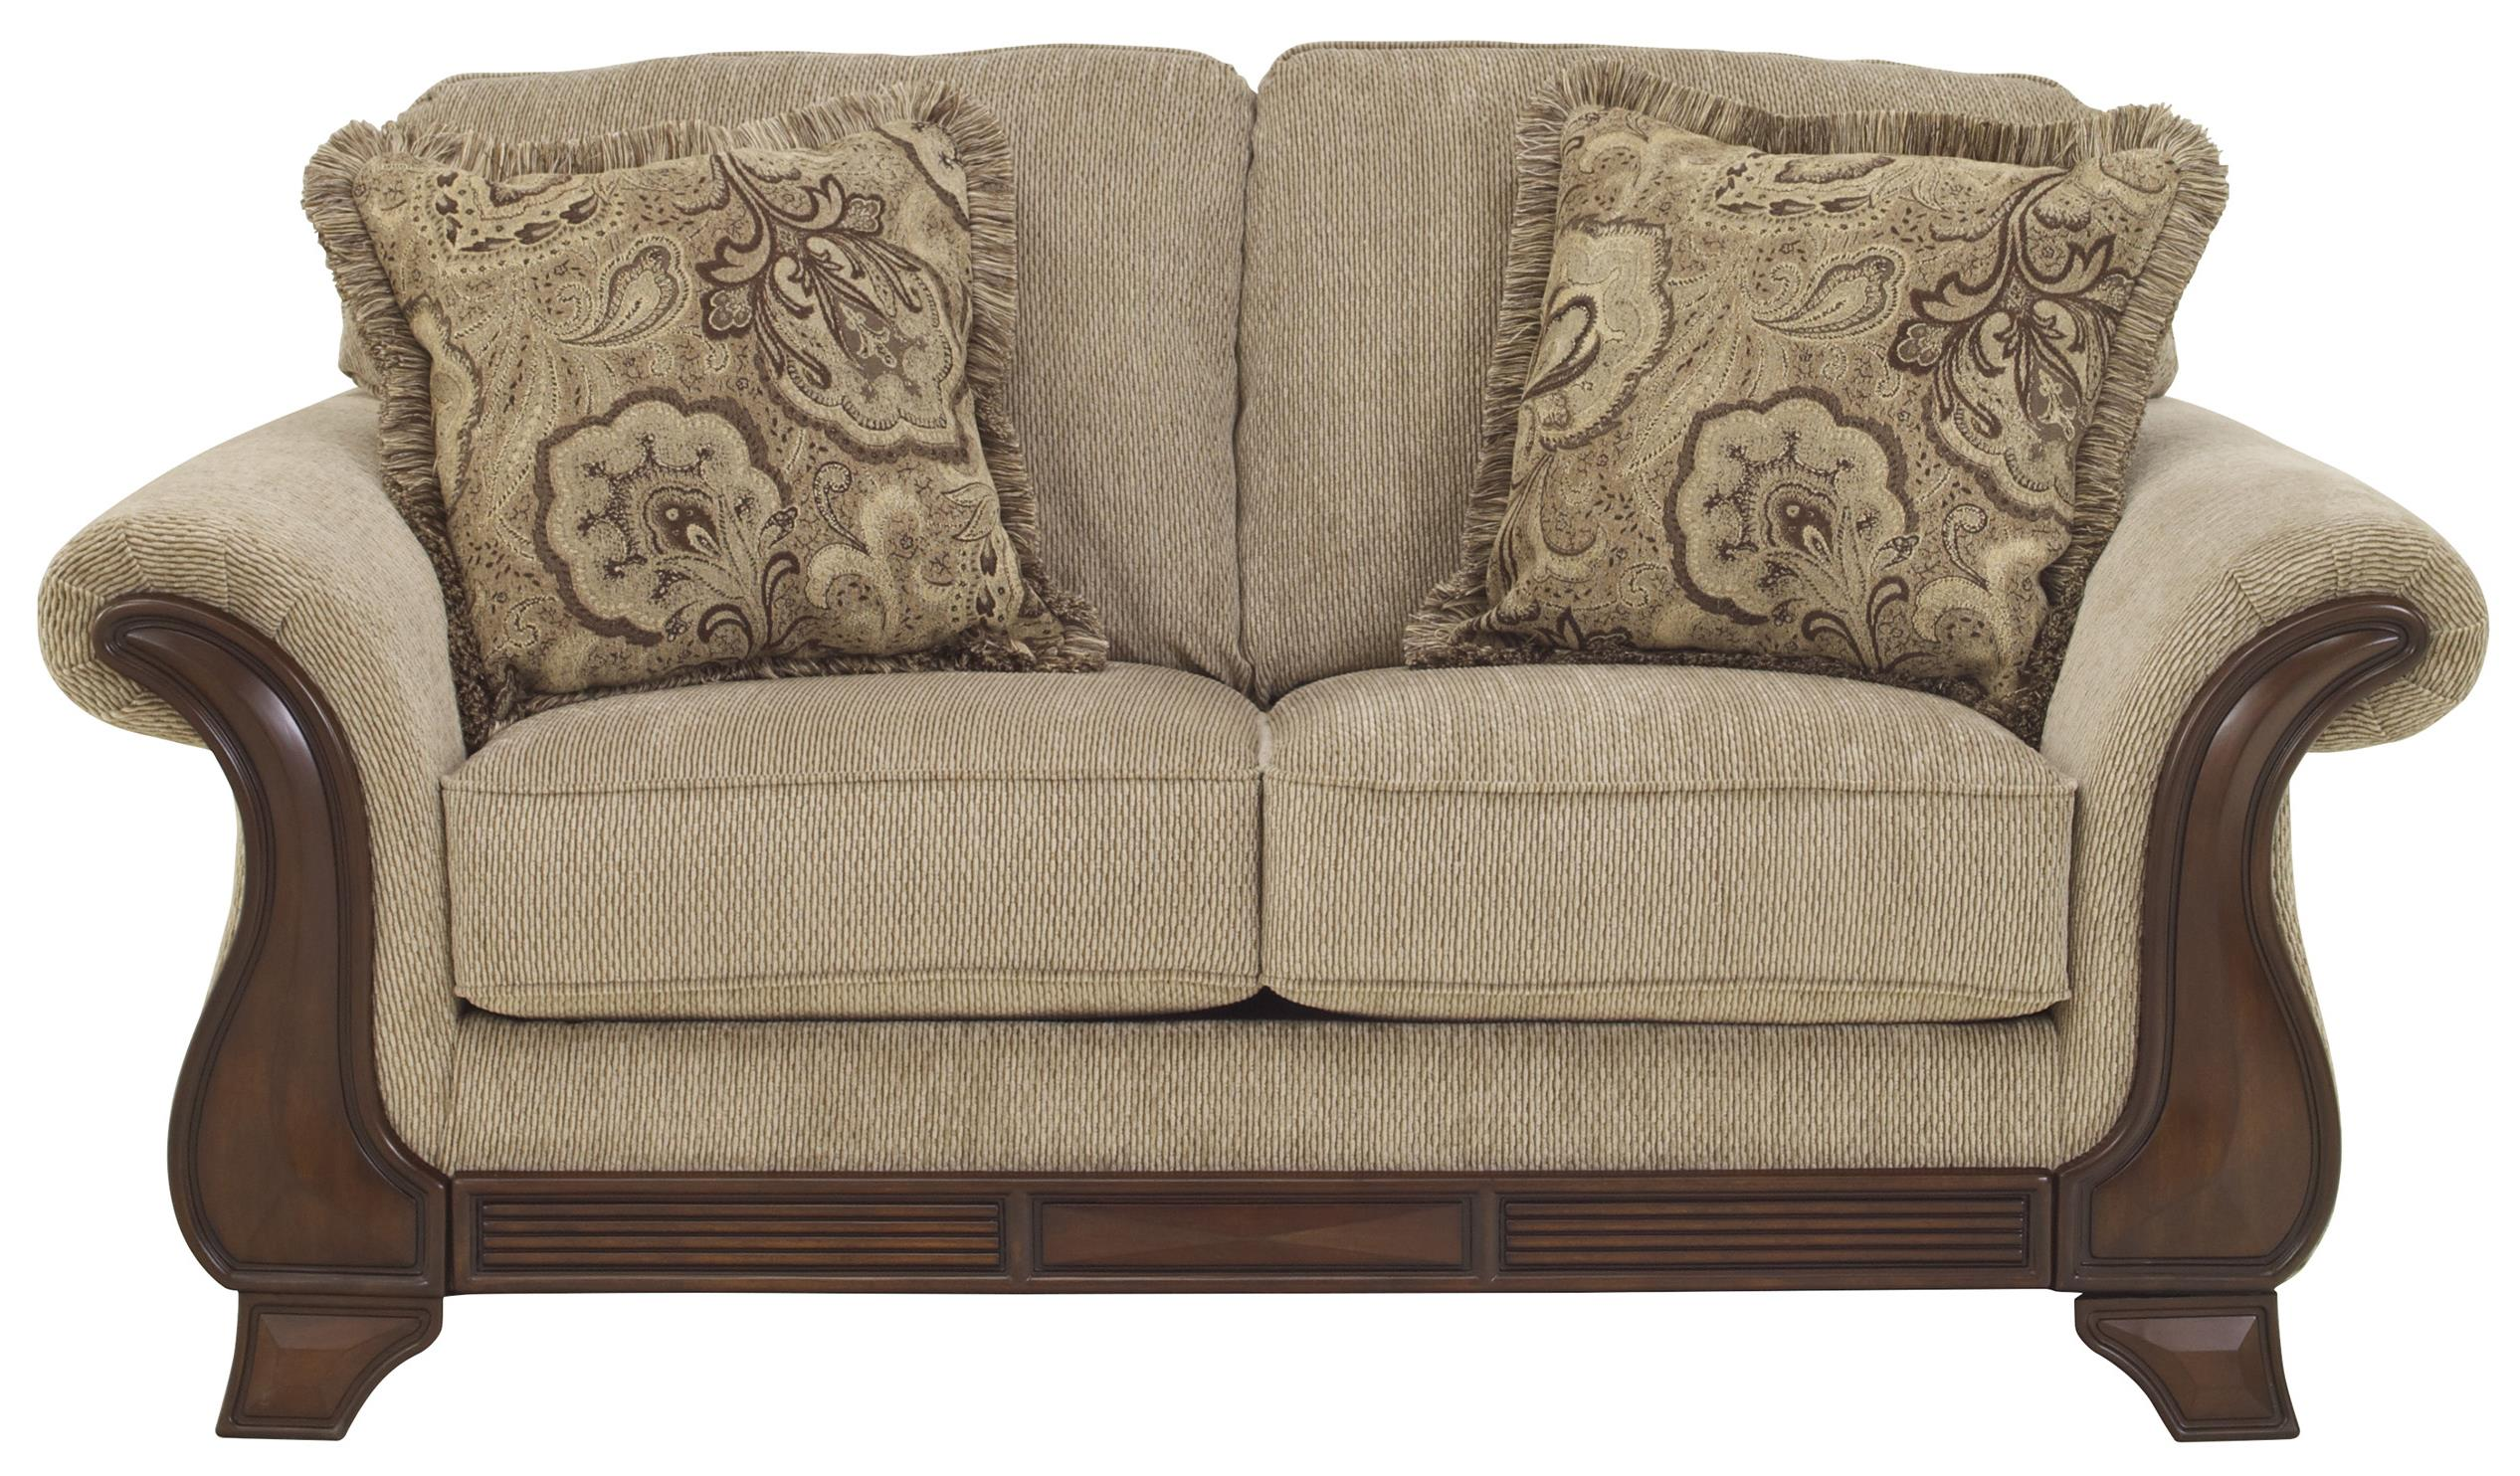 Lanett Loveseat by Signature Design by Ashley at Northeast Factory Direct